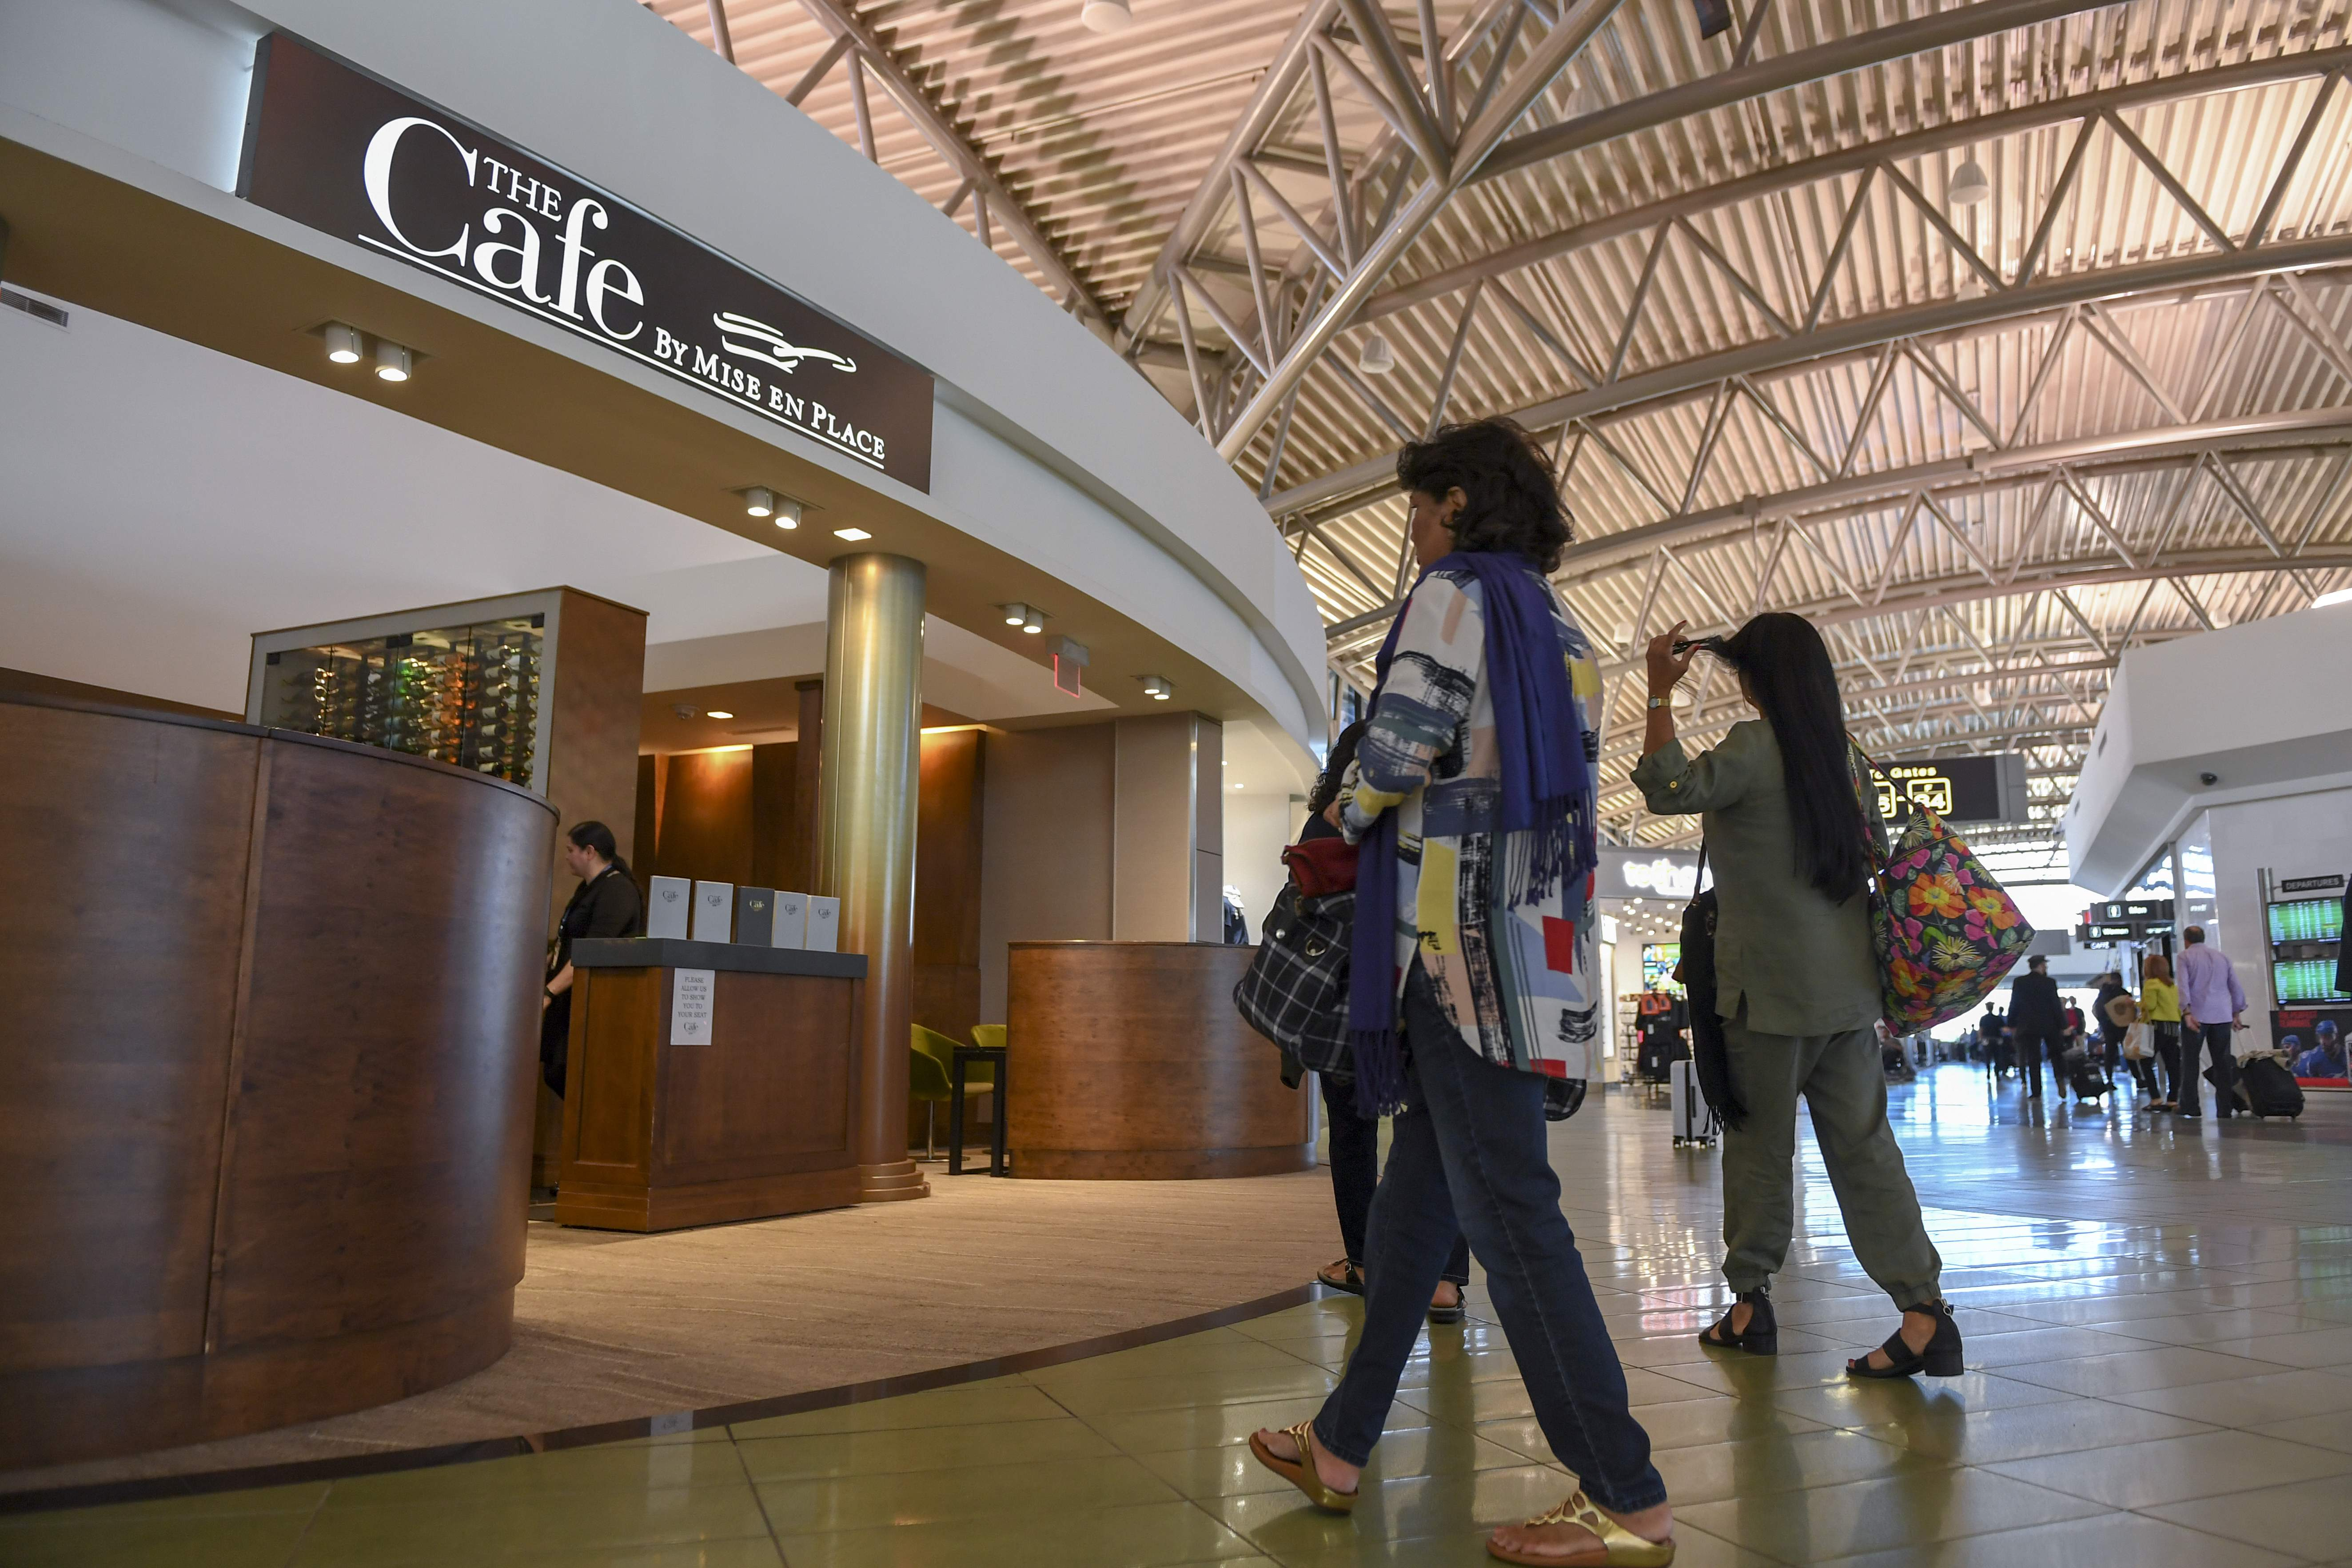 Mise En Place Design tampa airport to allow non-fliers to try its airside cuisine